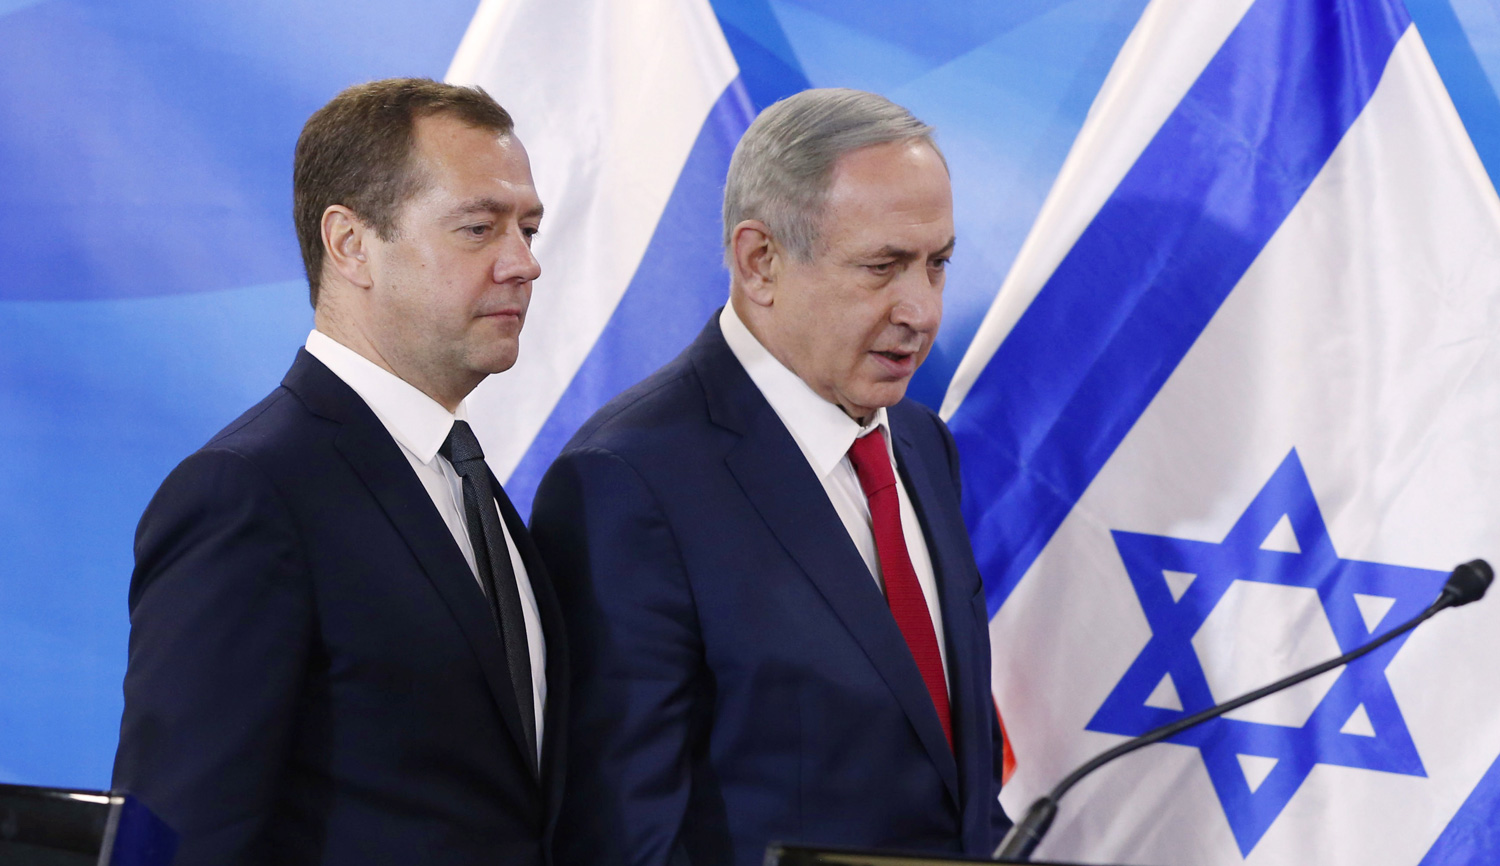 Russian Prime Minister Dmitry Medvedev and Israeli Prime Minister Benjamin Netanyahu during a press conference on November 10, 2016. Dmitry AstakhovTASS via Getty Images.